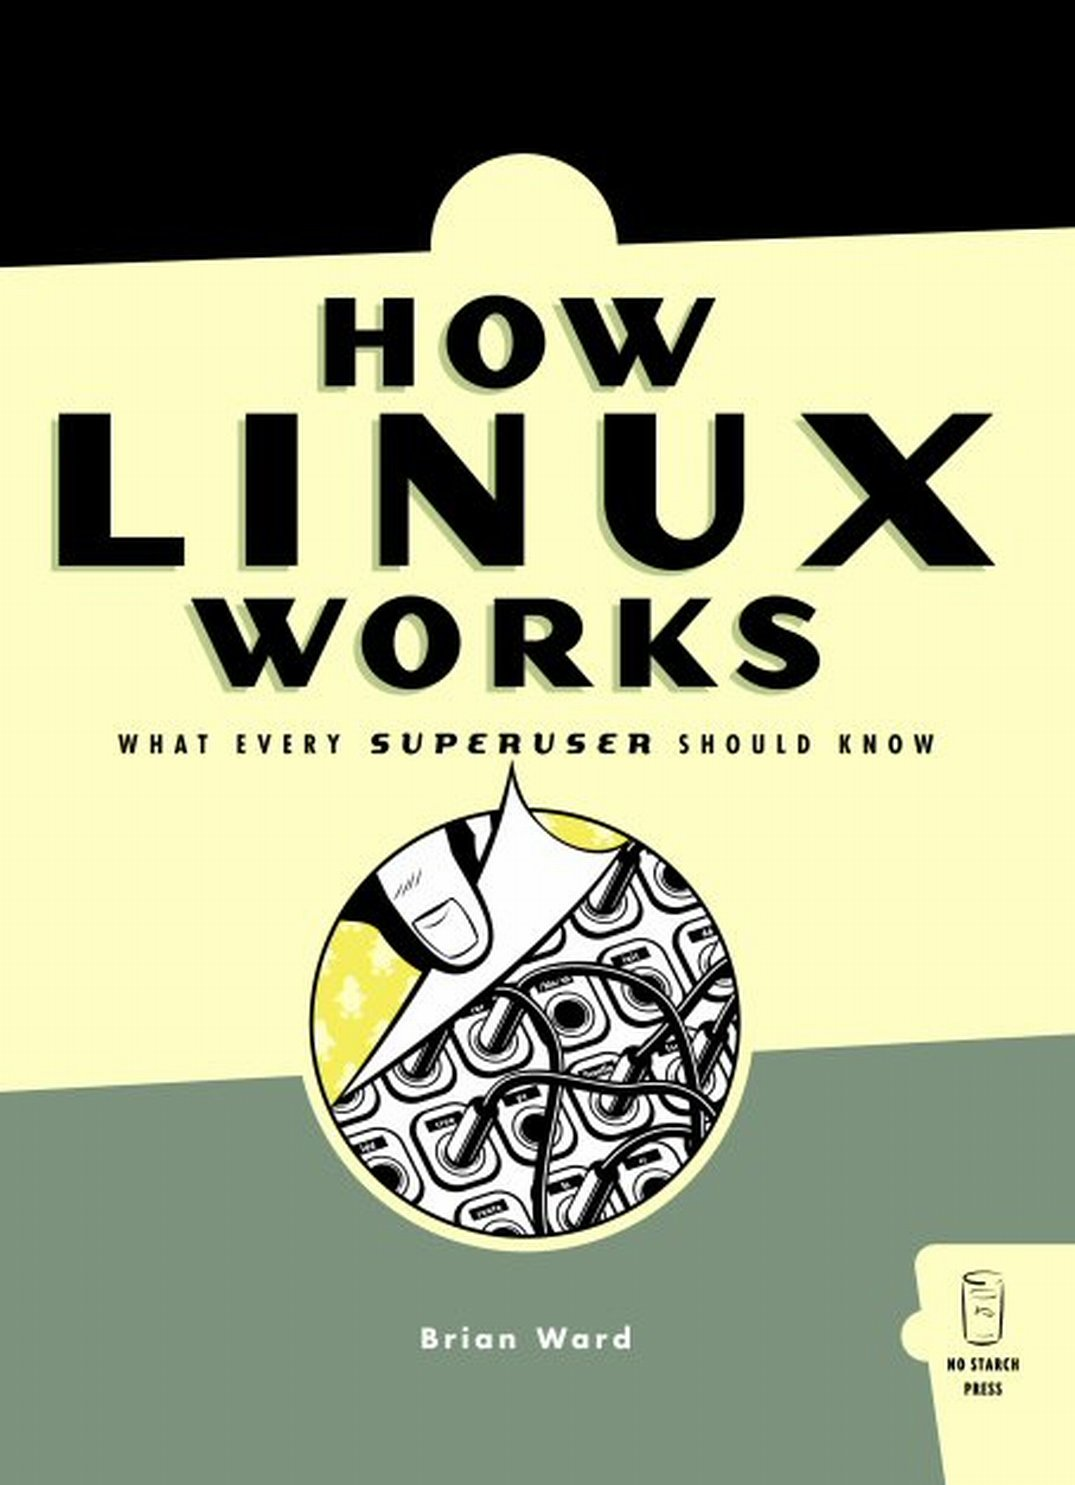 Which are the best Unix/Linux reference books? - Quora